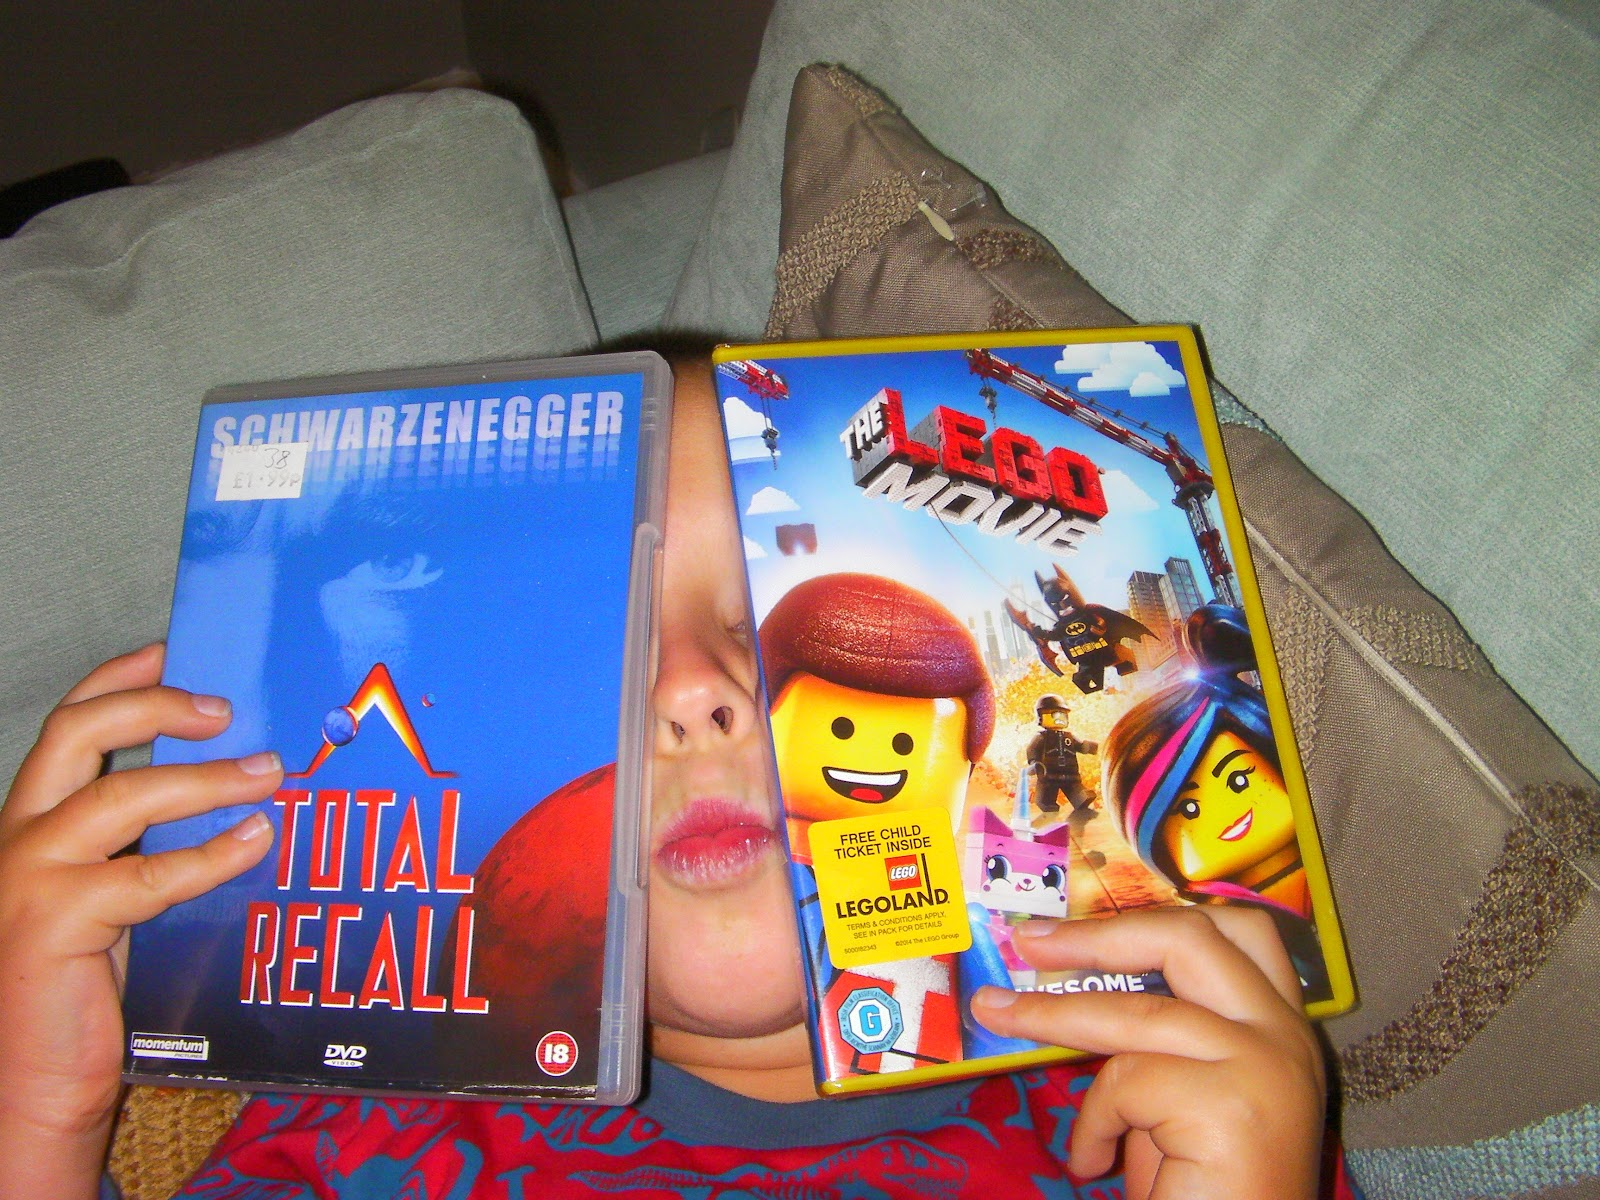 schwarzenegger in total recall and the lego movie dvds